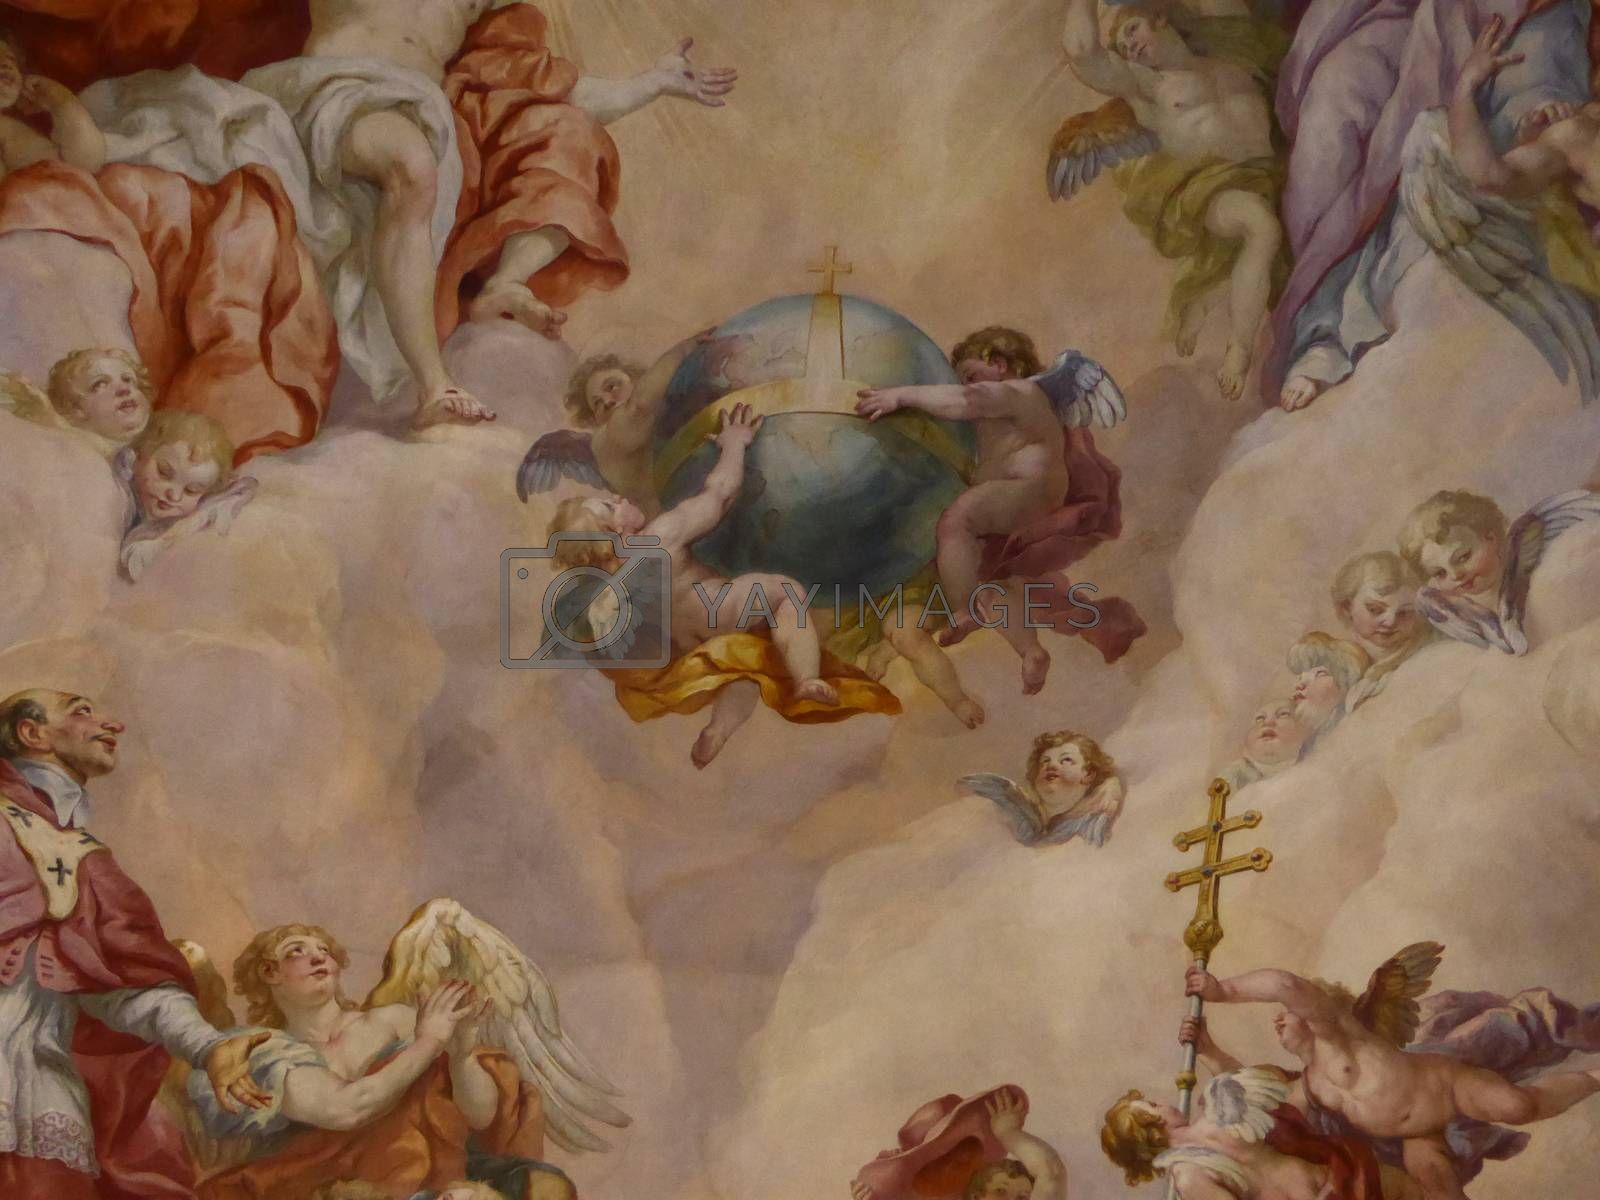 Vienna, Austria – August 27, 2013:  Ceiling frescoes by Johann Michael Rottmayr in the Karlskirche in Vienna on August 27, 2013. The Venna's finest baroque church was built because of a solemn vow made by Emperor Charles VI to invoke St. Charles for protecting the city struck in 1713 by a terrible epidemic of plague. It's considered a piece of Rome outside Italy